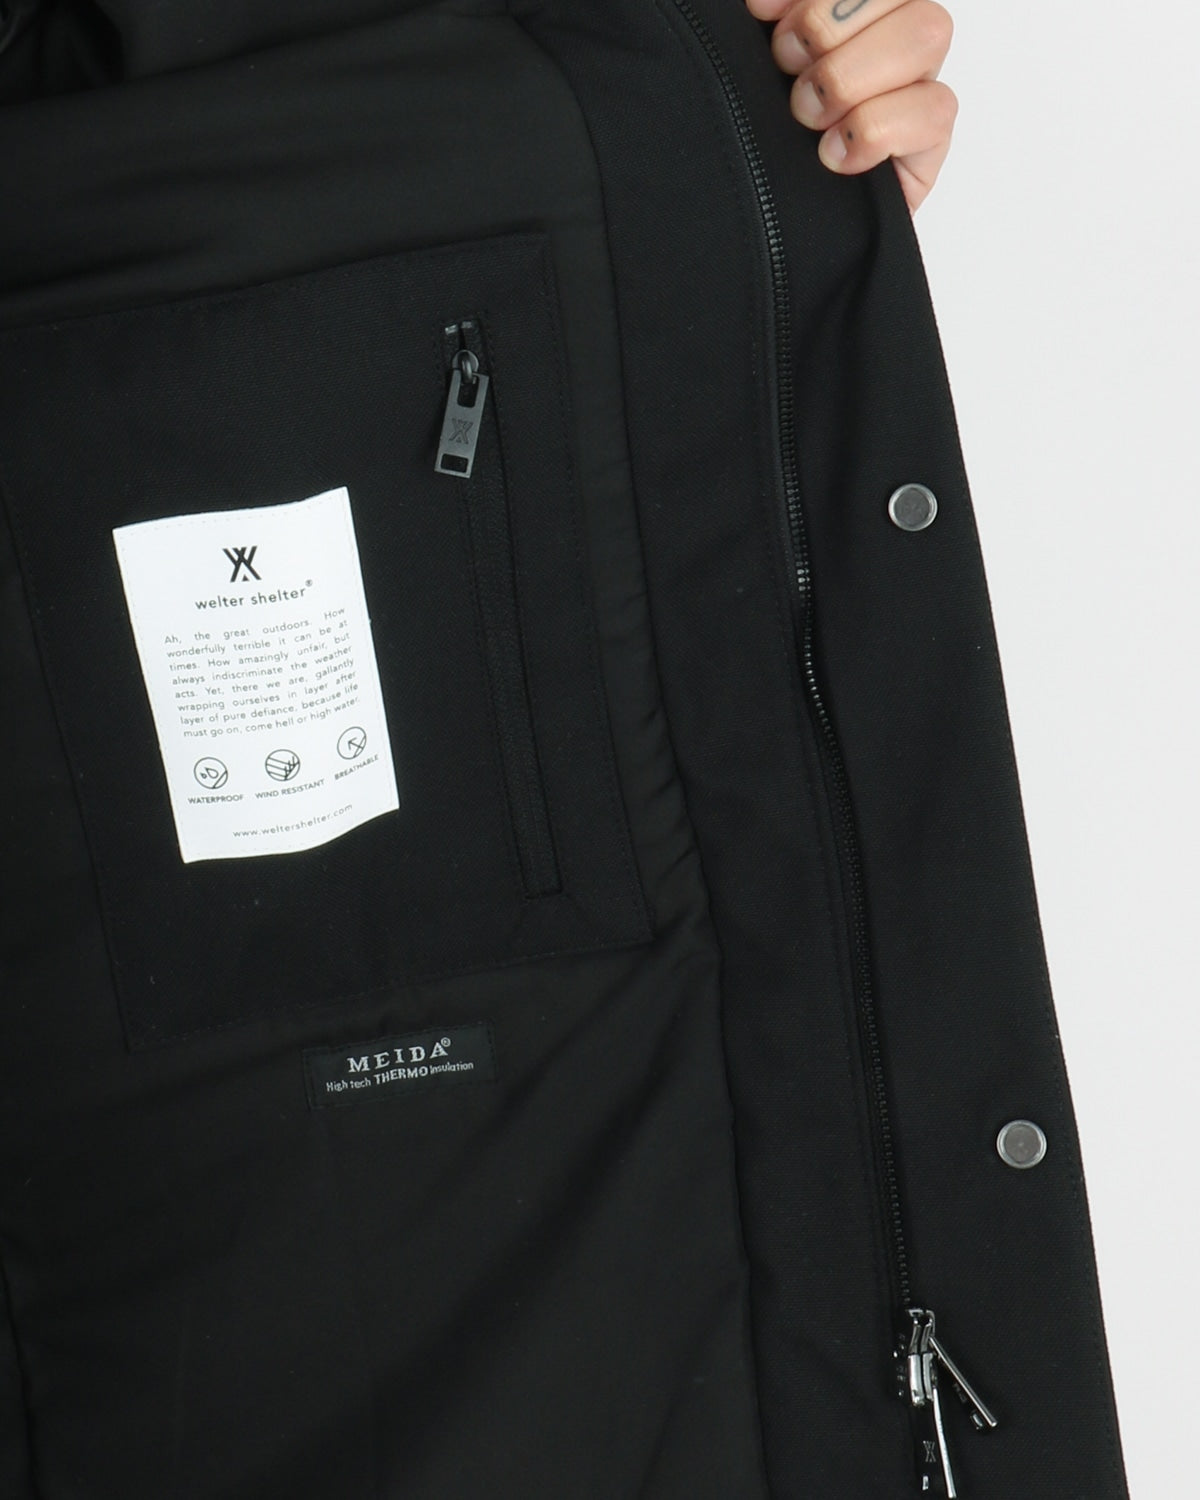 welter shelter_hooded parka_black_view_2_4